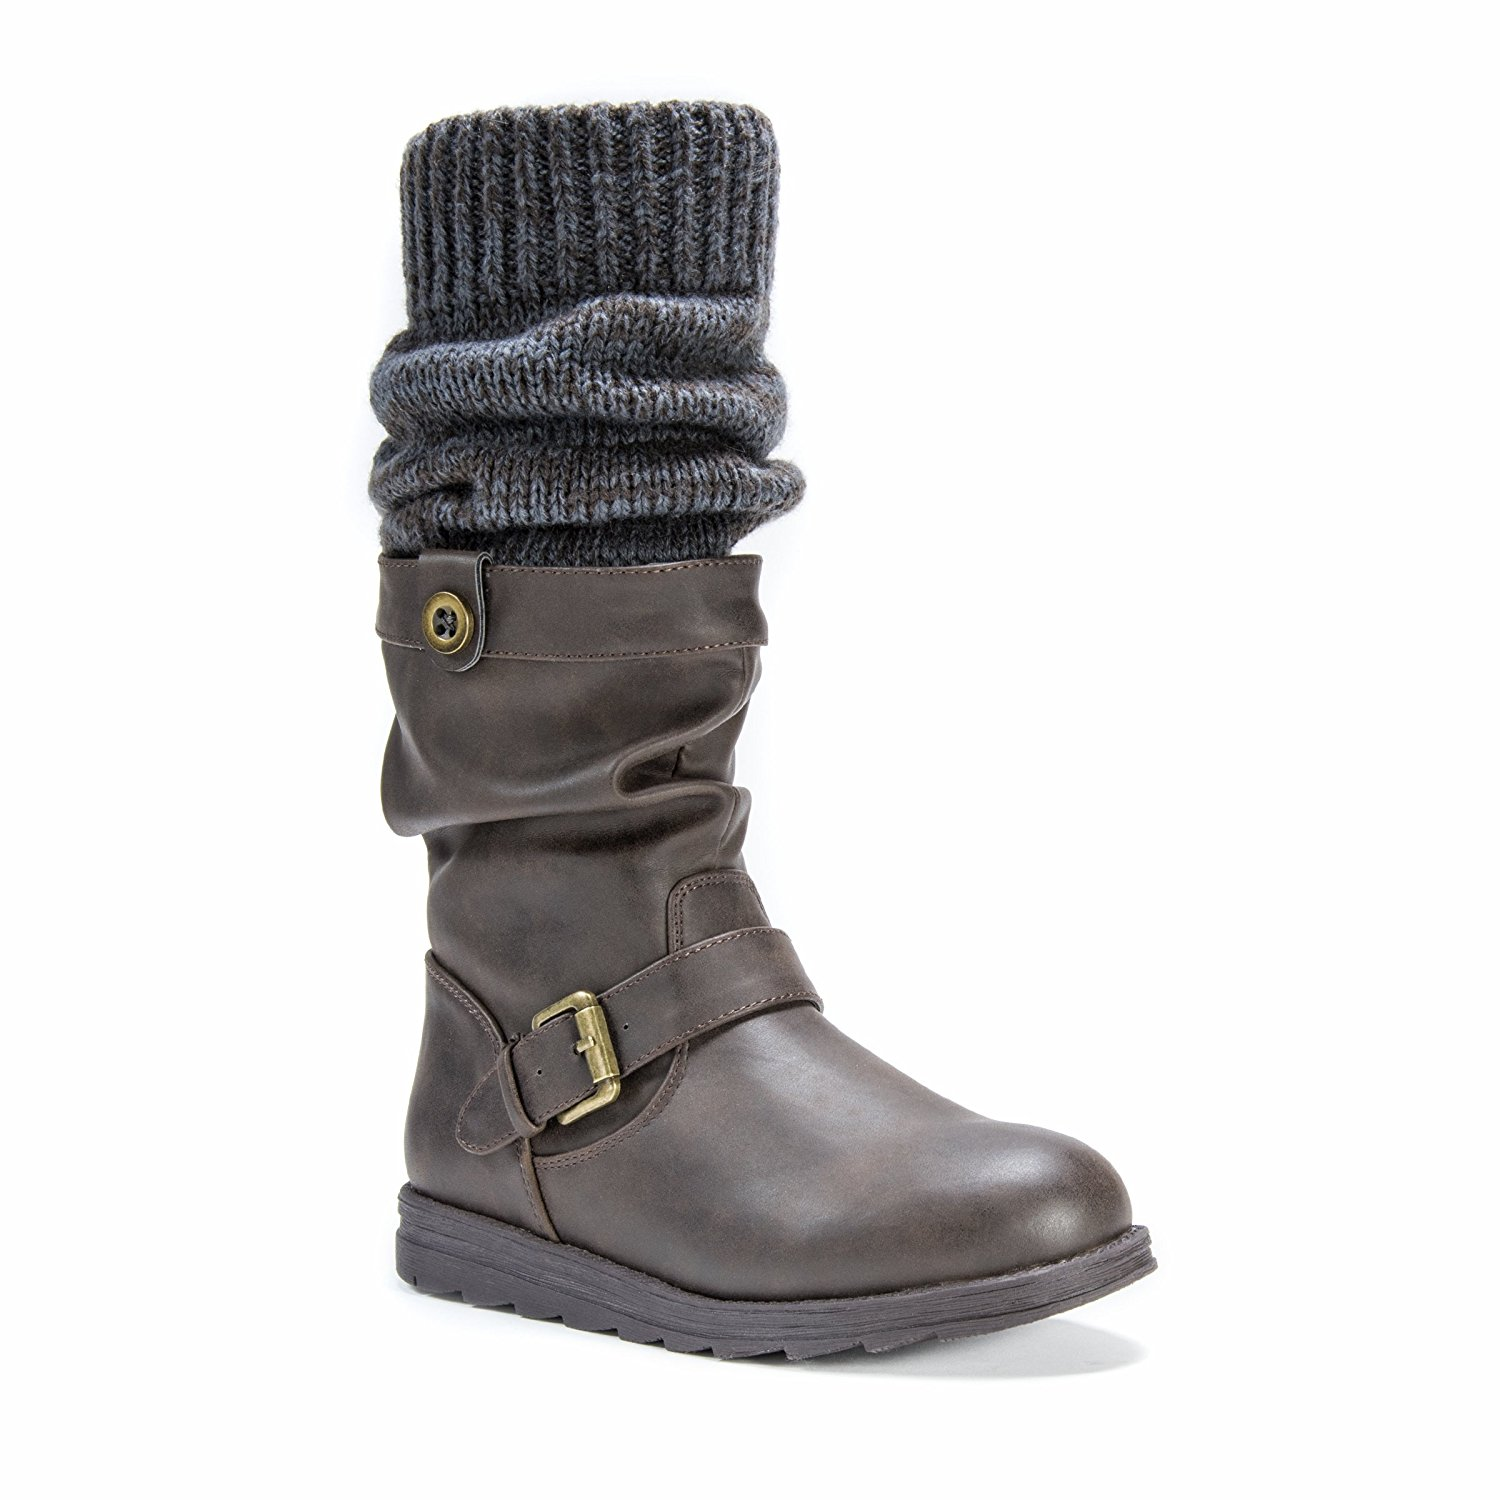 MUK LUKS Women's Sky Fashion Boot Coffee Size 7.0